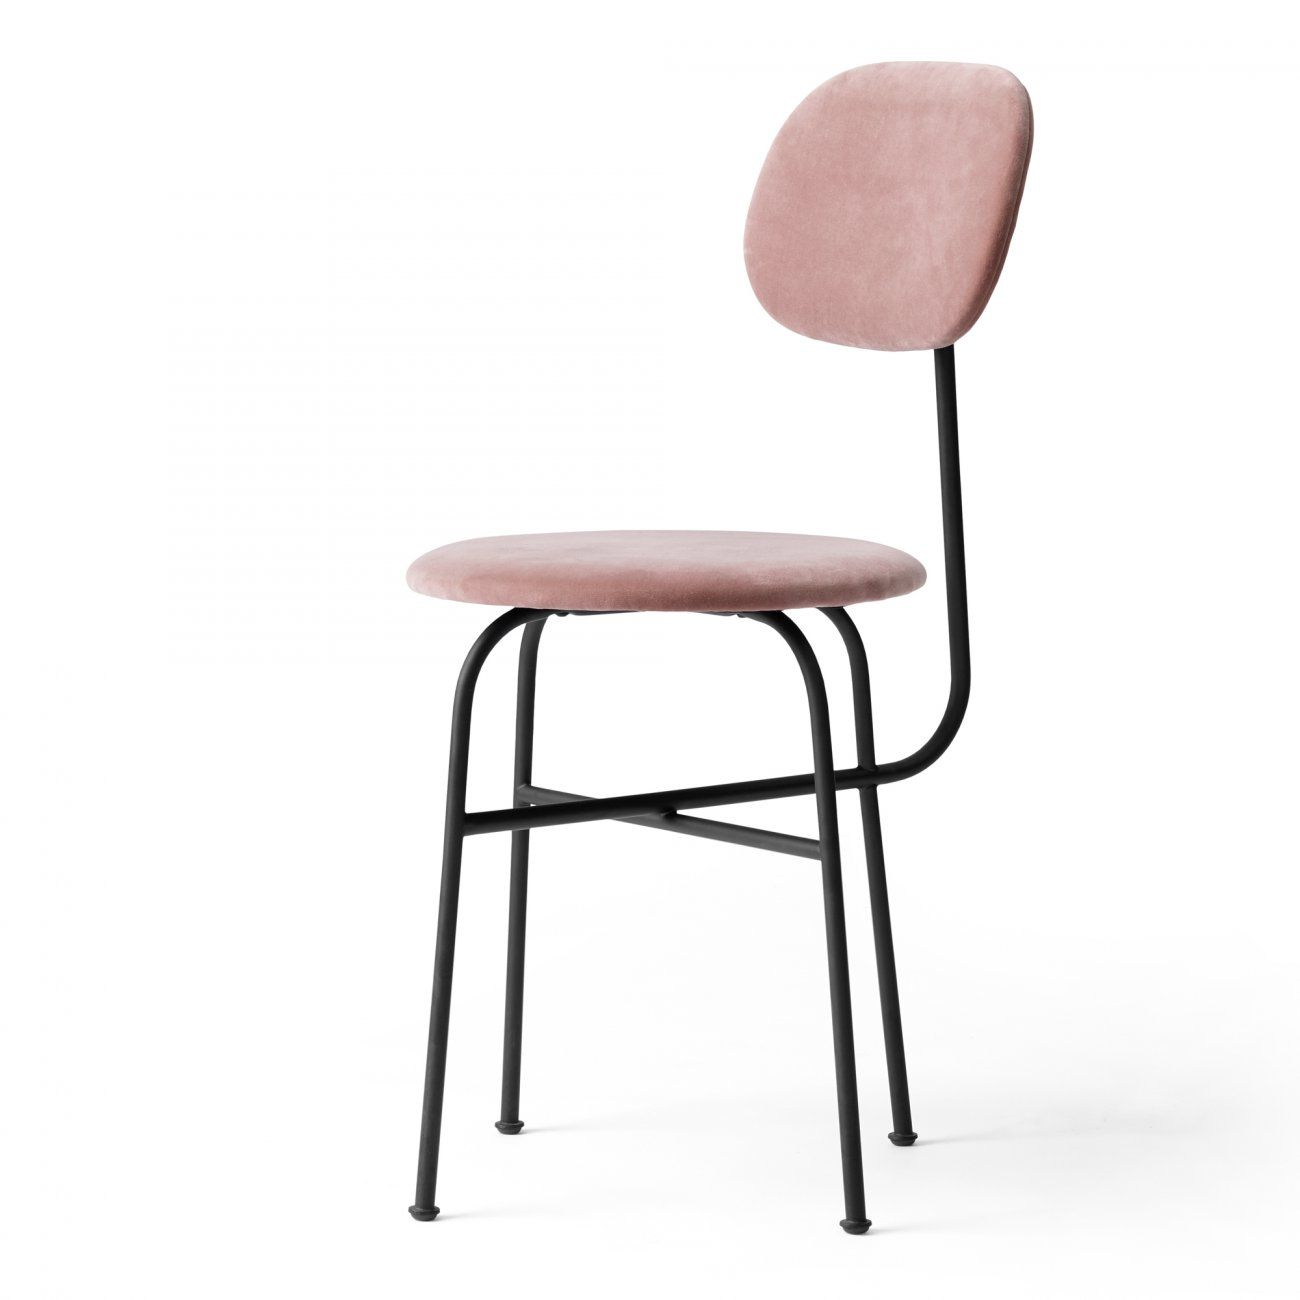 chair plus stool for toddlers afteroom dining in 2018 counter stools chairs